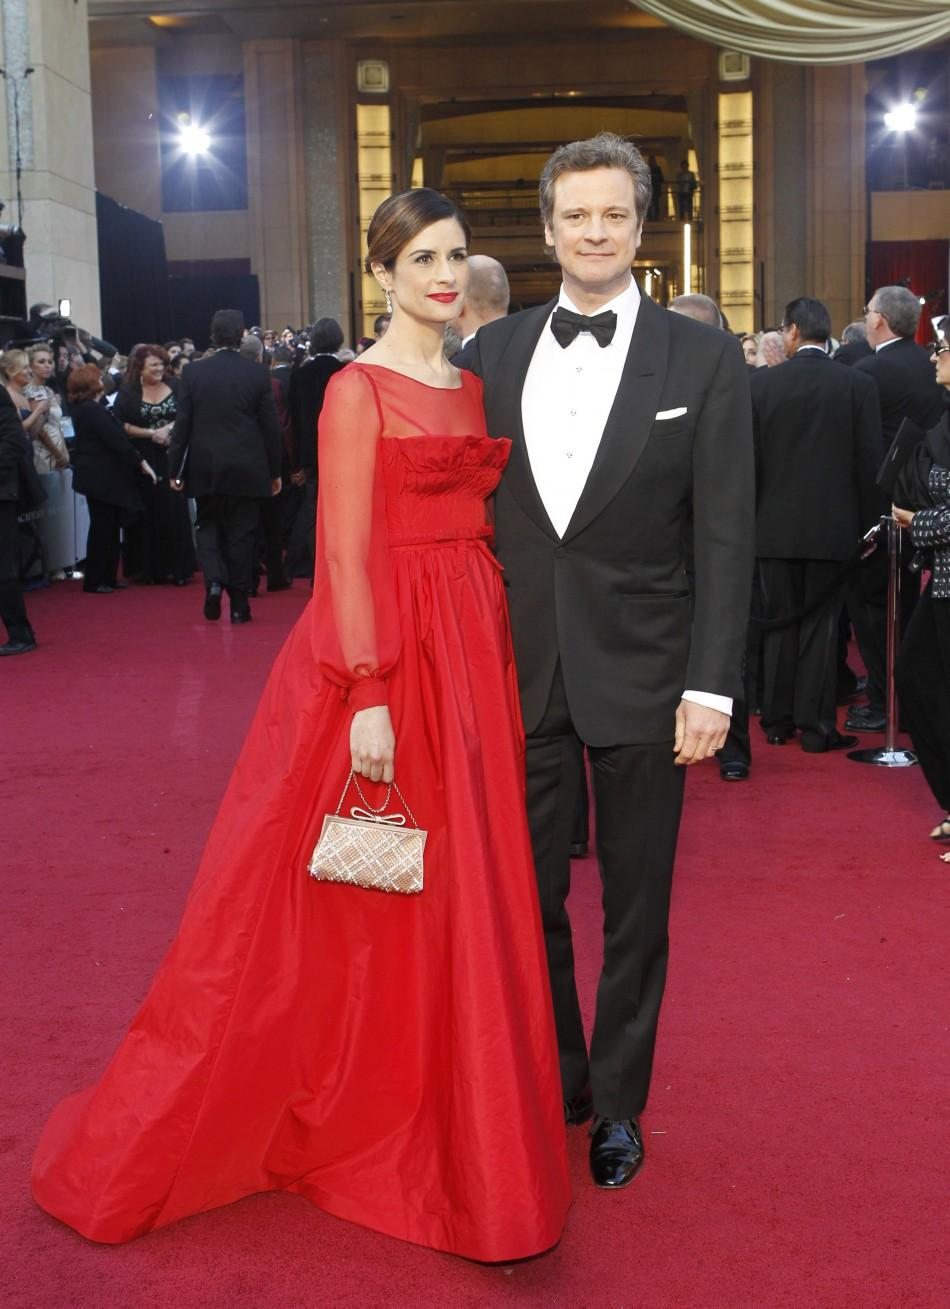 Actor Colin Firth and his wife Livia Giuggioli pose at the 84th Academy Awards in Hollywood, California, February 26, 2012.